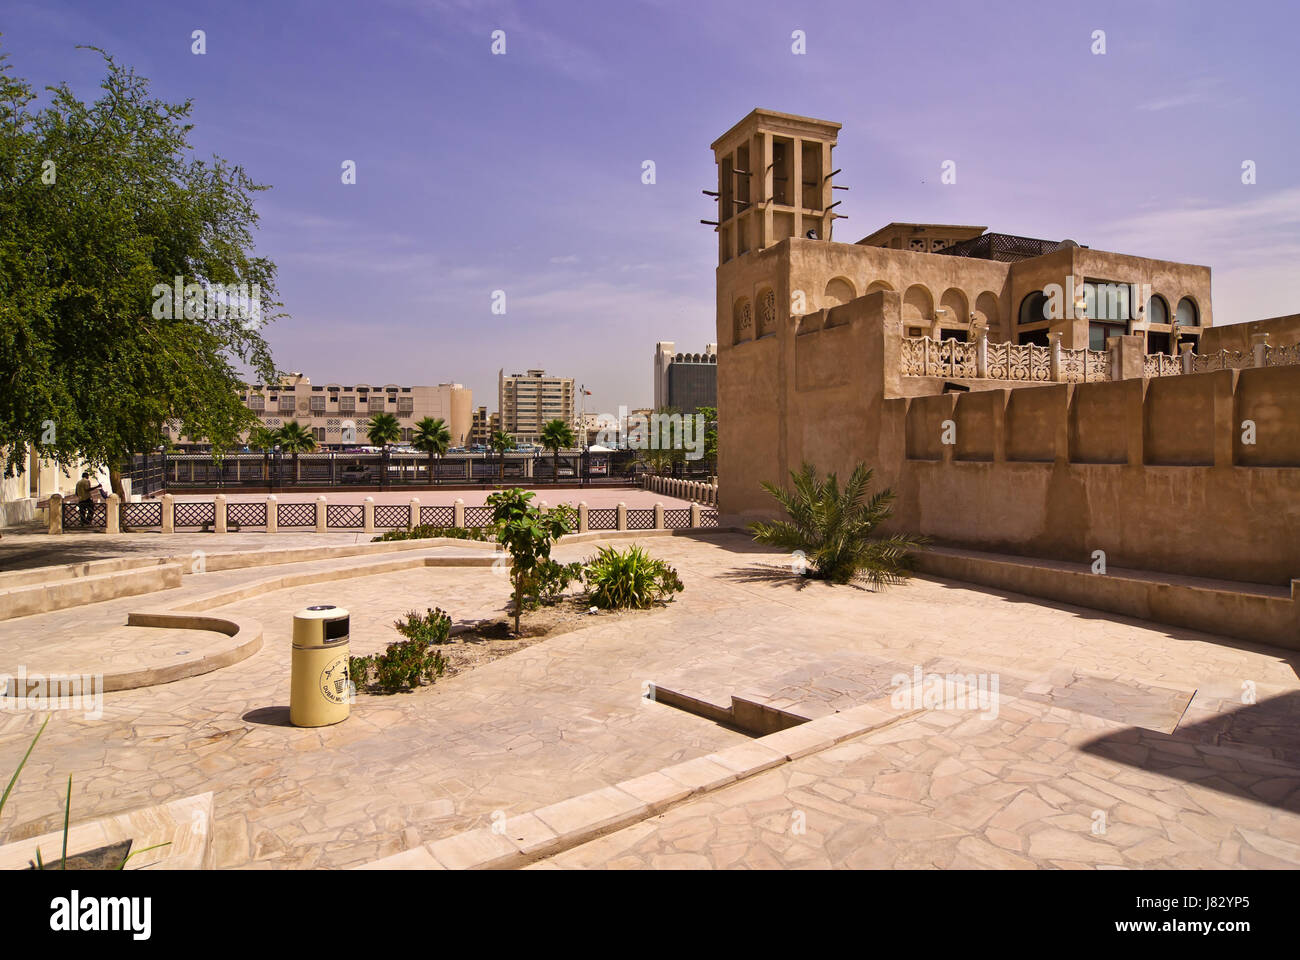 city town capital gulf emirates united persian story religion city town culture - Stock Image